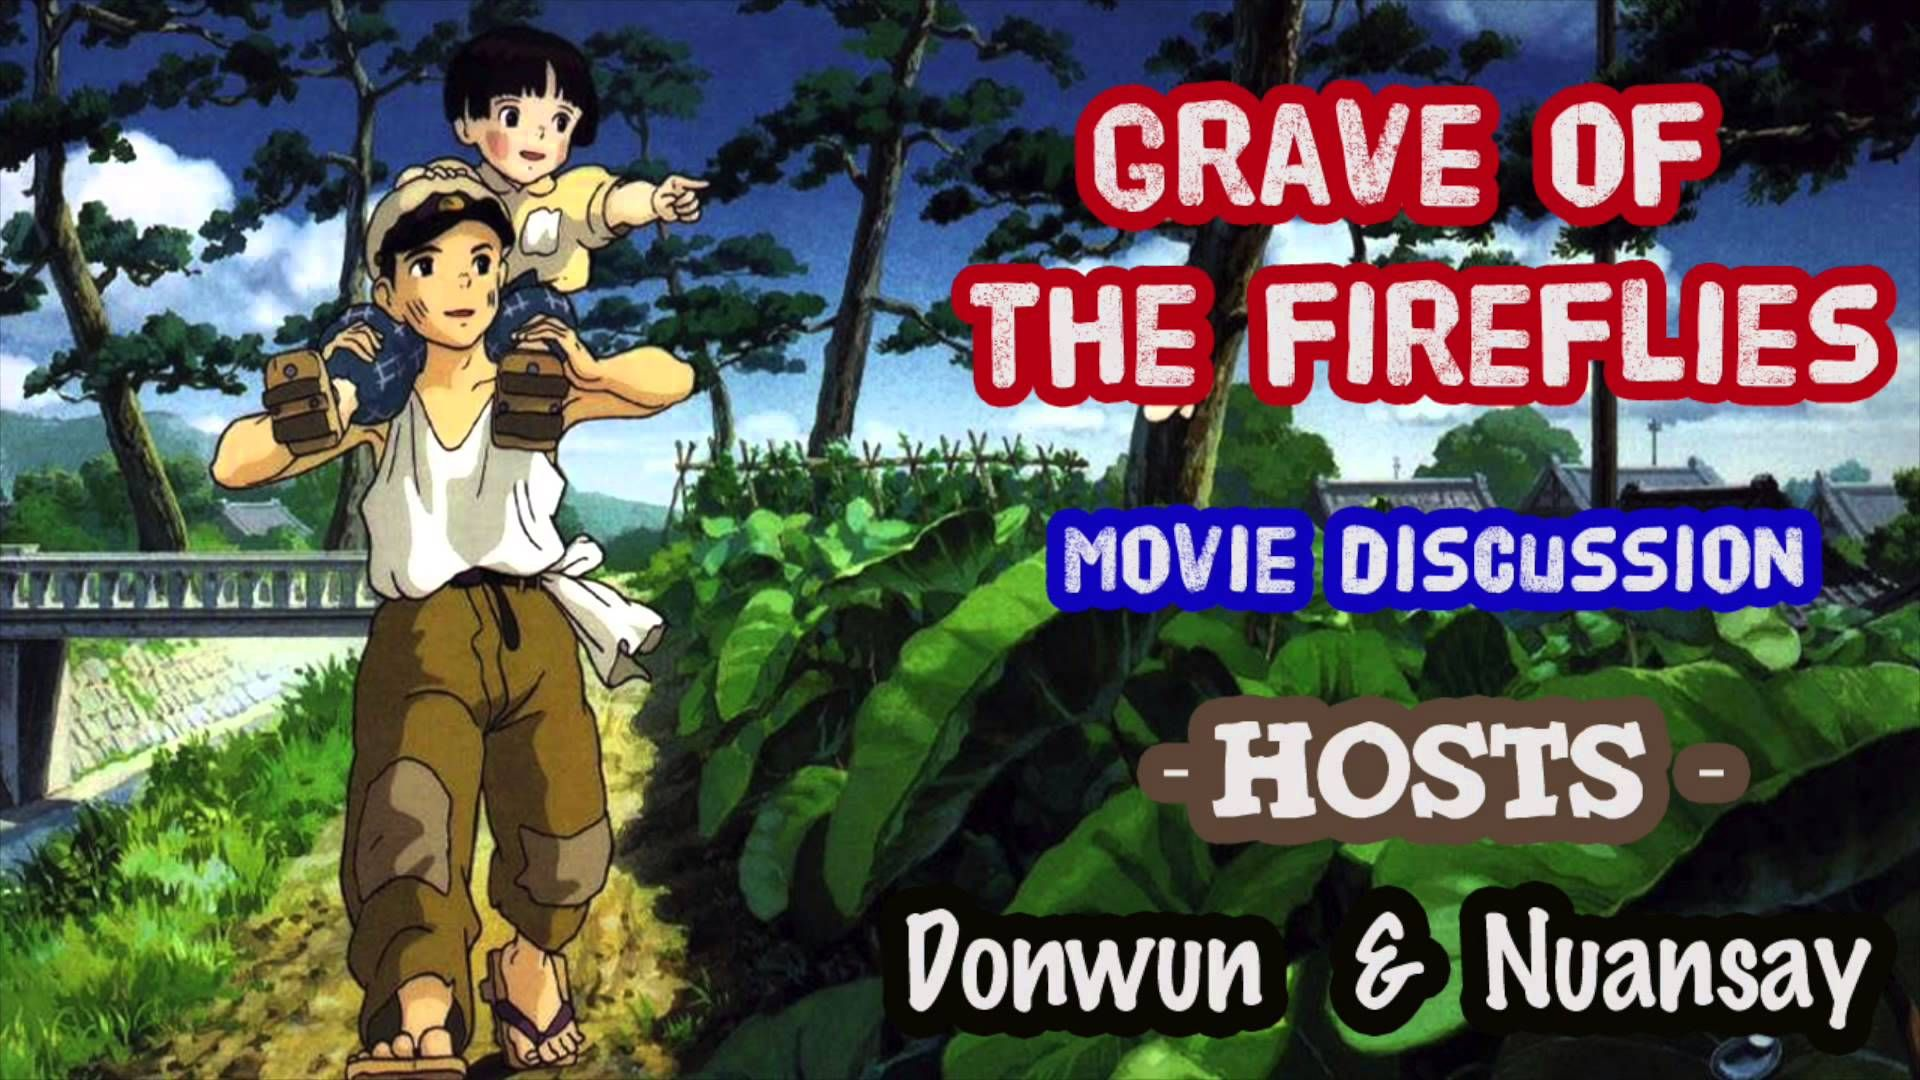 Grave Of The Fireflies REWATCHING ANOTHER PAINFUL